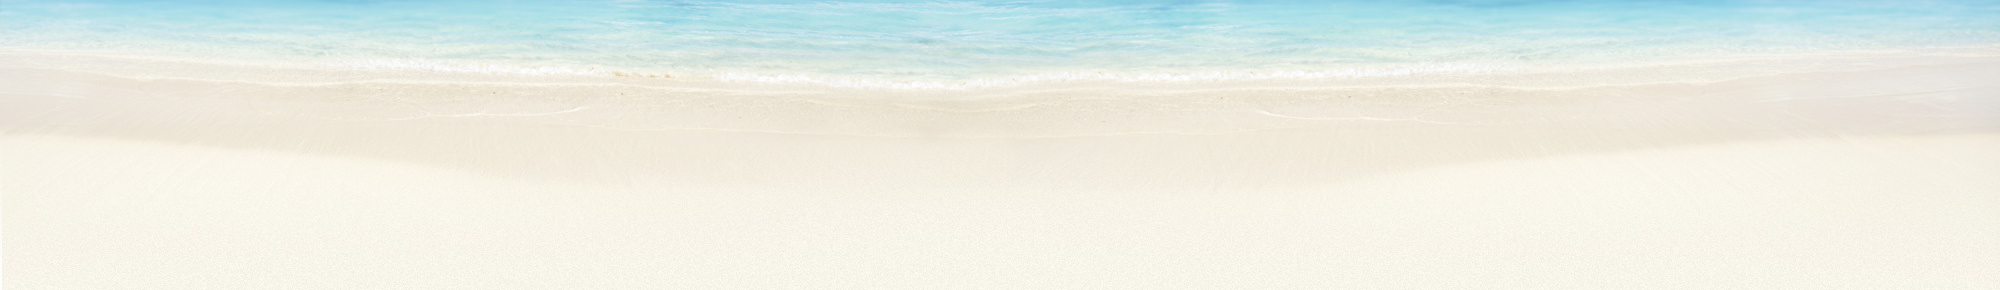 Waves on beach page header background